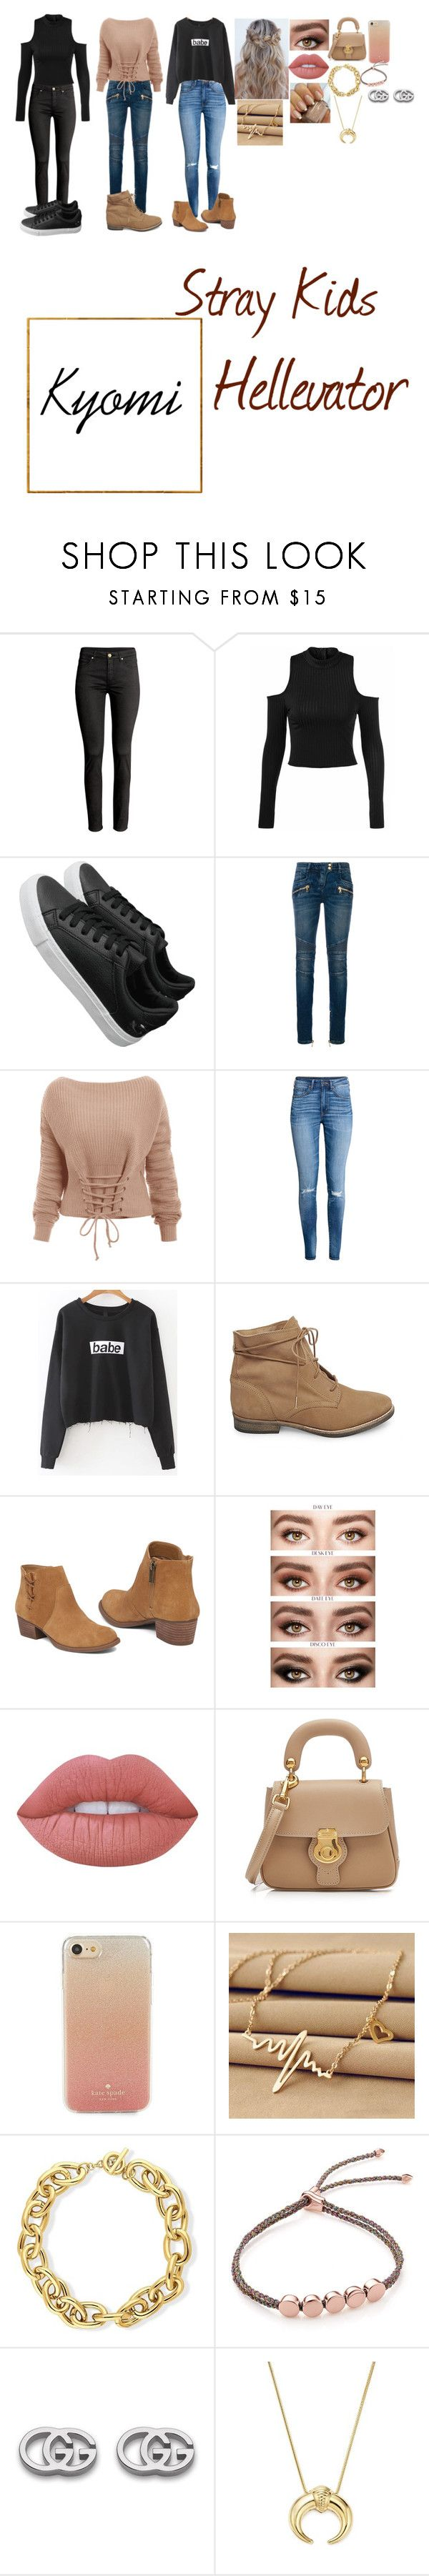 """""""Hellevator"""" by kyomihanninzowa on Polyvore featuring Balmain, H&M, Steve Madden, Jessica Simpson, Lime Crime, Burberry, Kate Spade, BERRICLE, Monica Vinader and Gucci"""